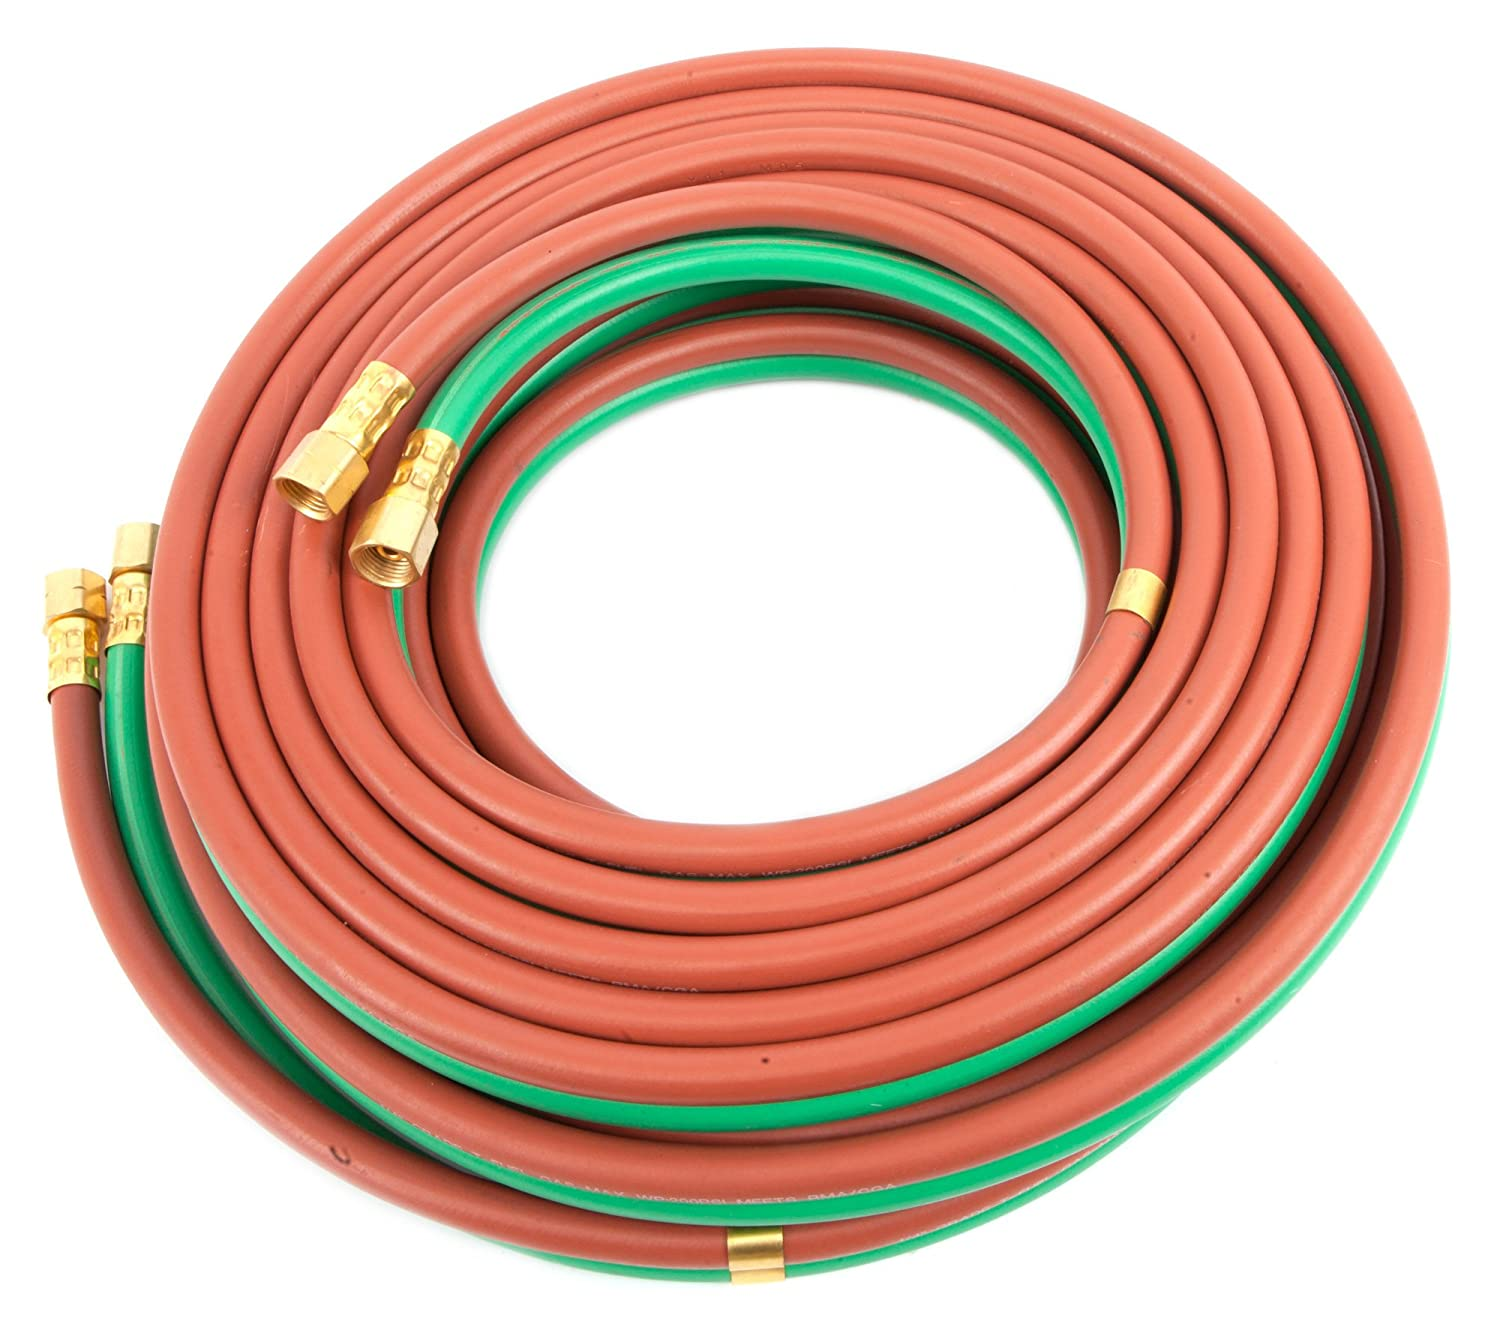 Forney 86165 Oxygen Acetylene Hose, T-Grade, 1/4-Inch by 50-Feet Forney Industries